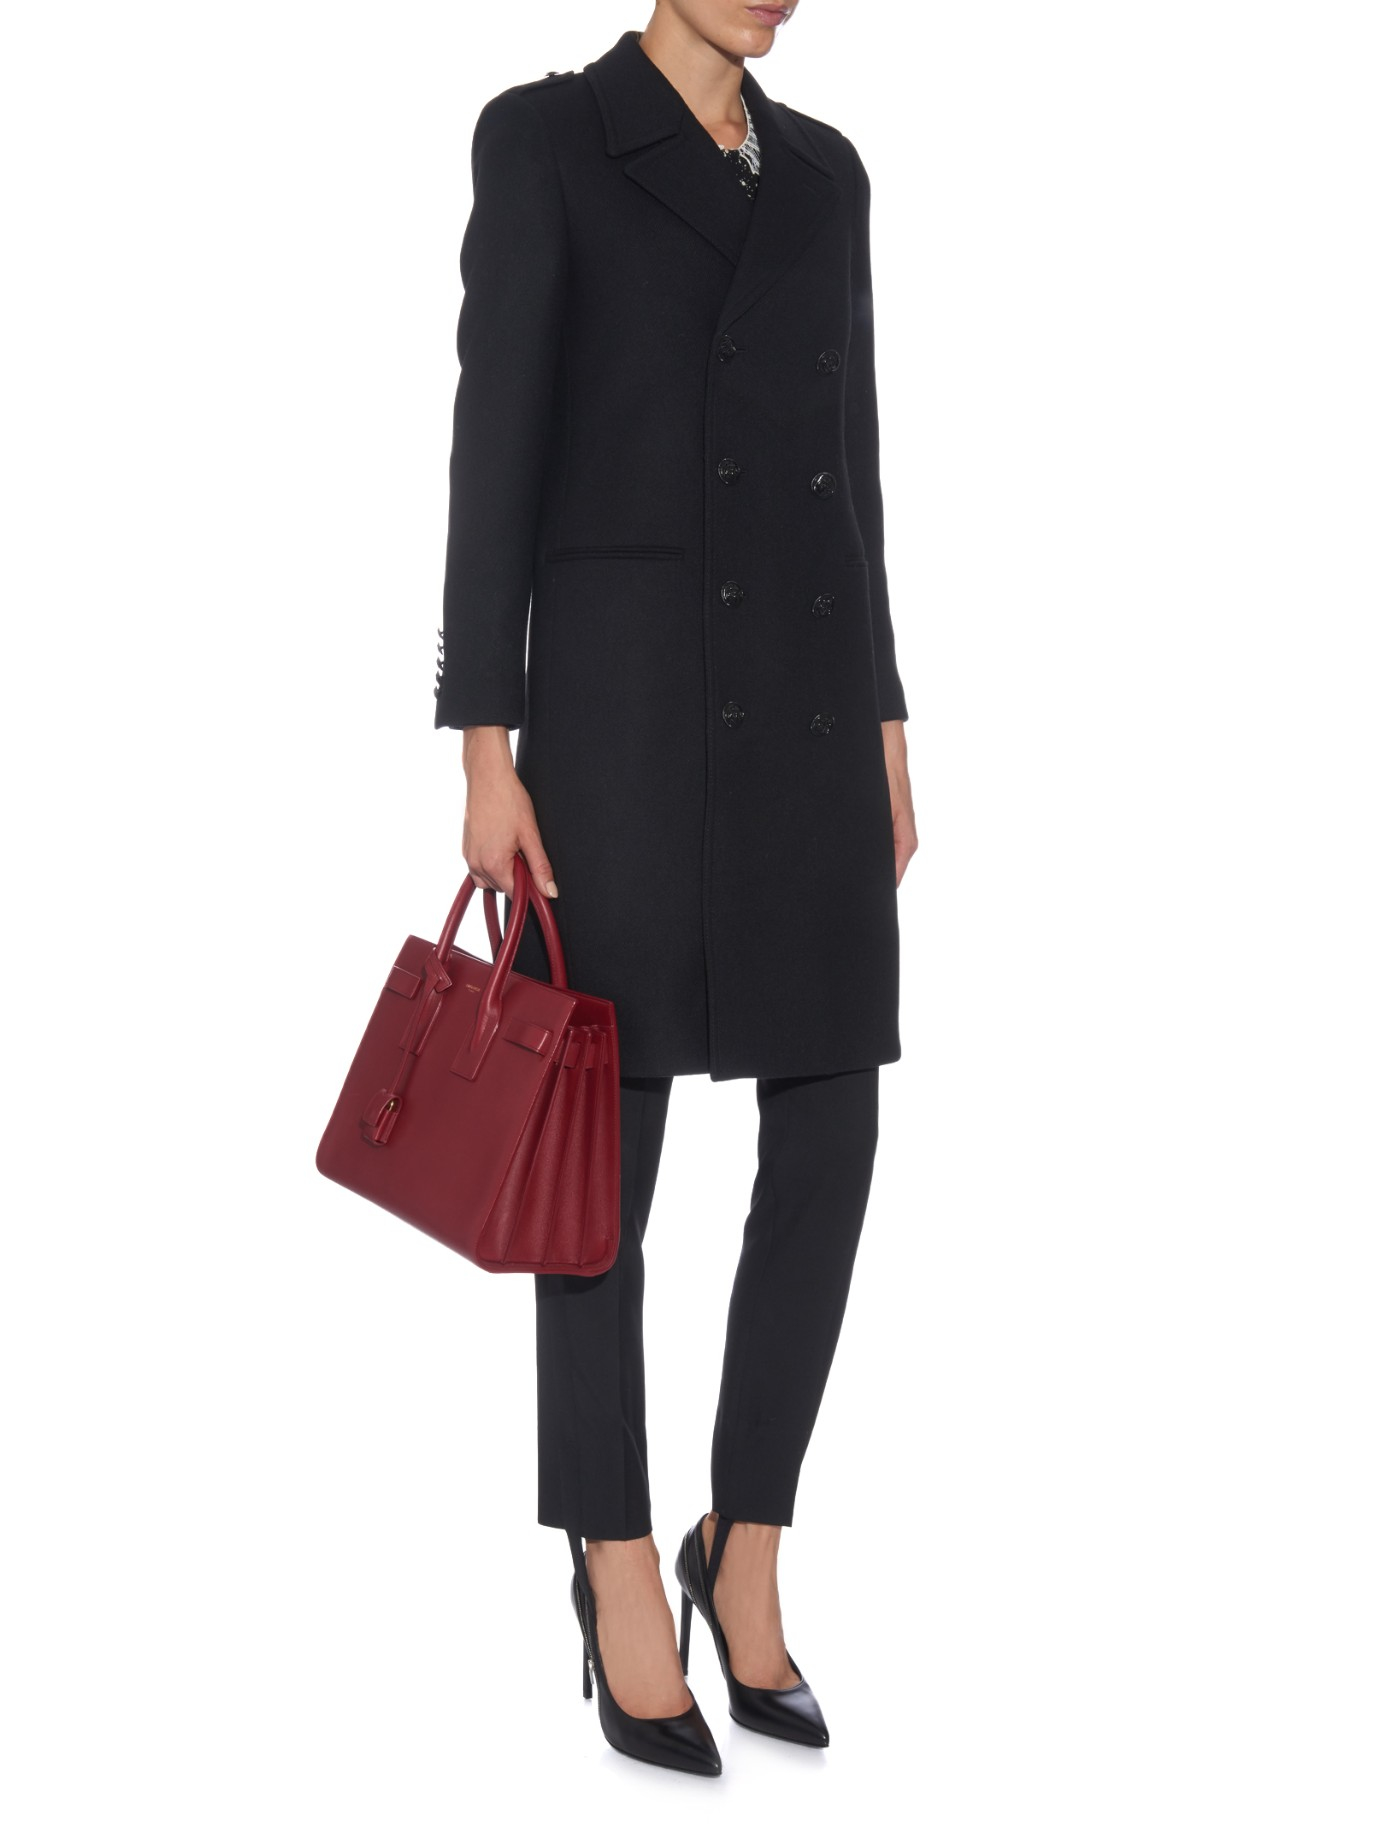 Saint laurent Chesterfield Double-breasted Wool Coat in Black | Lyst